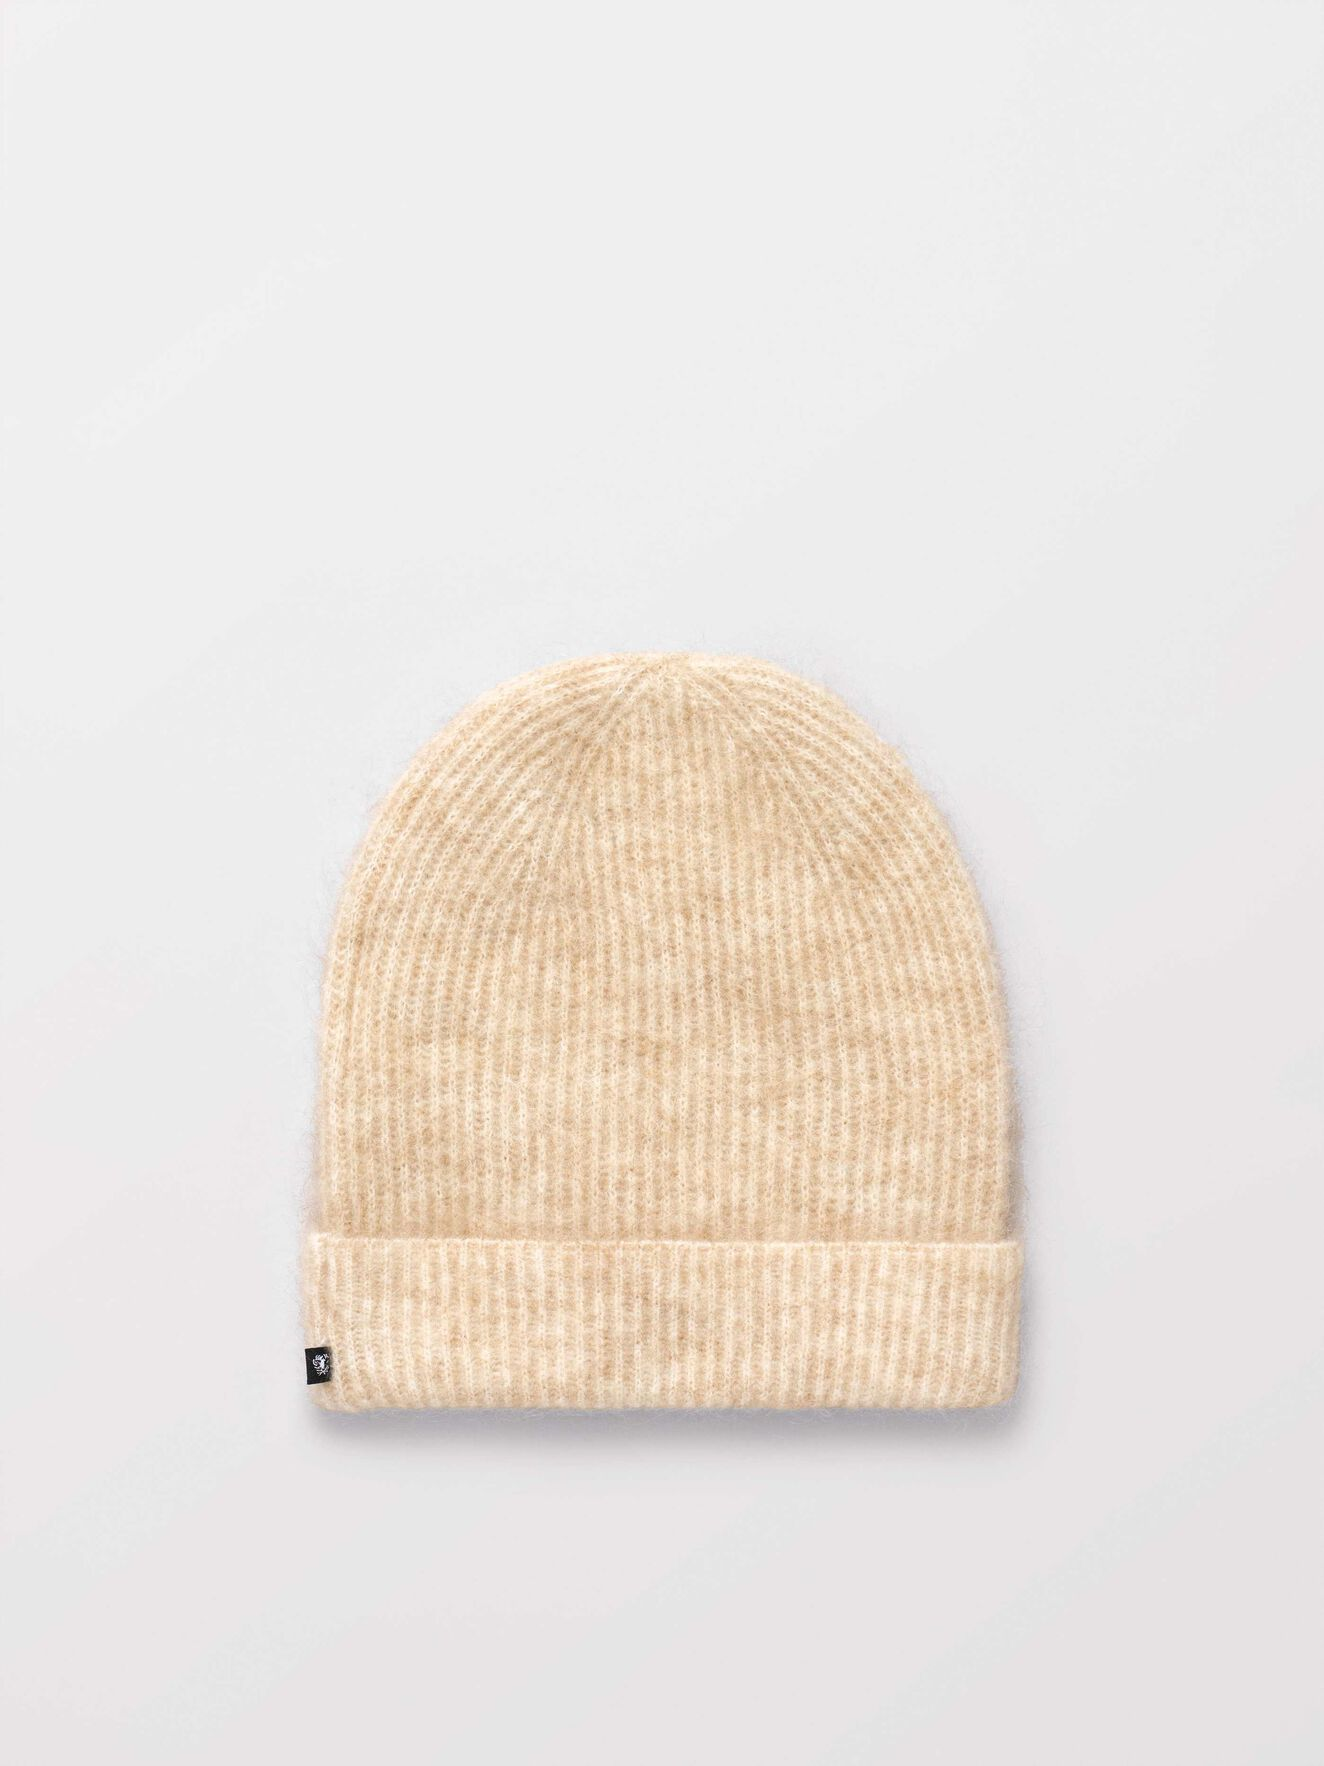 Abetone Beanie in Roasted Oat from Tiger of Sweden